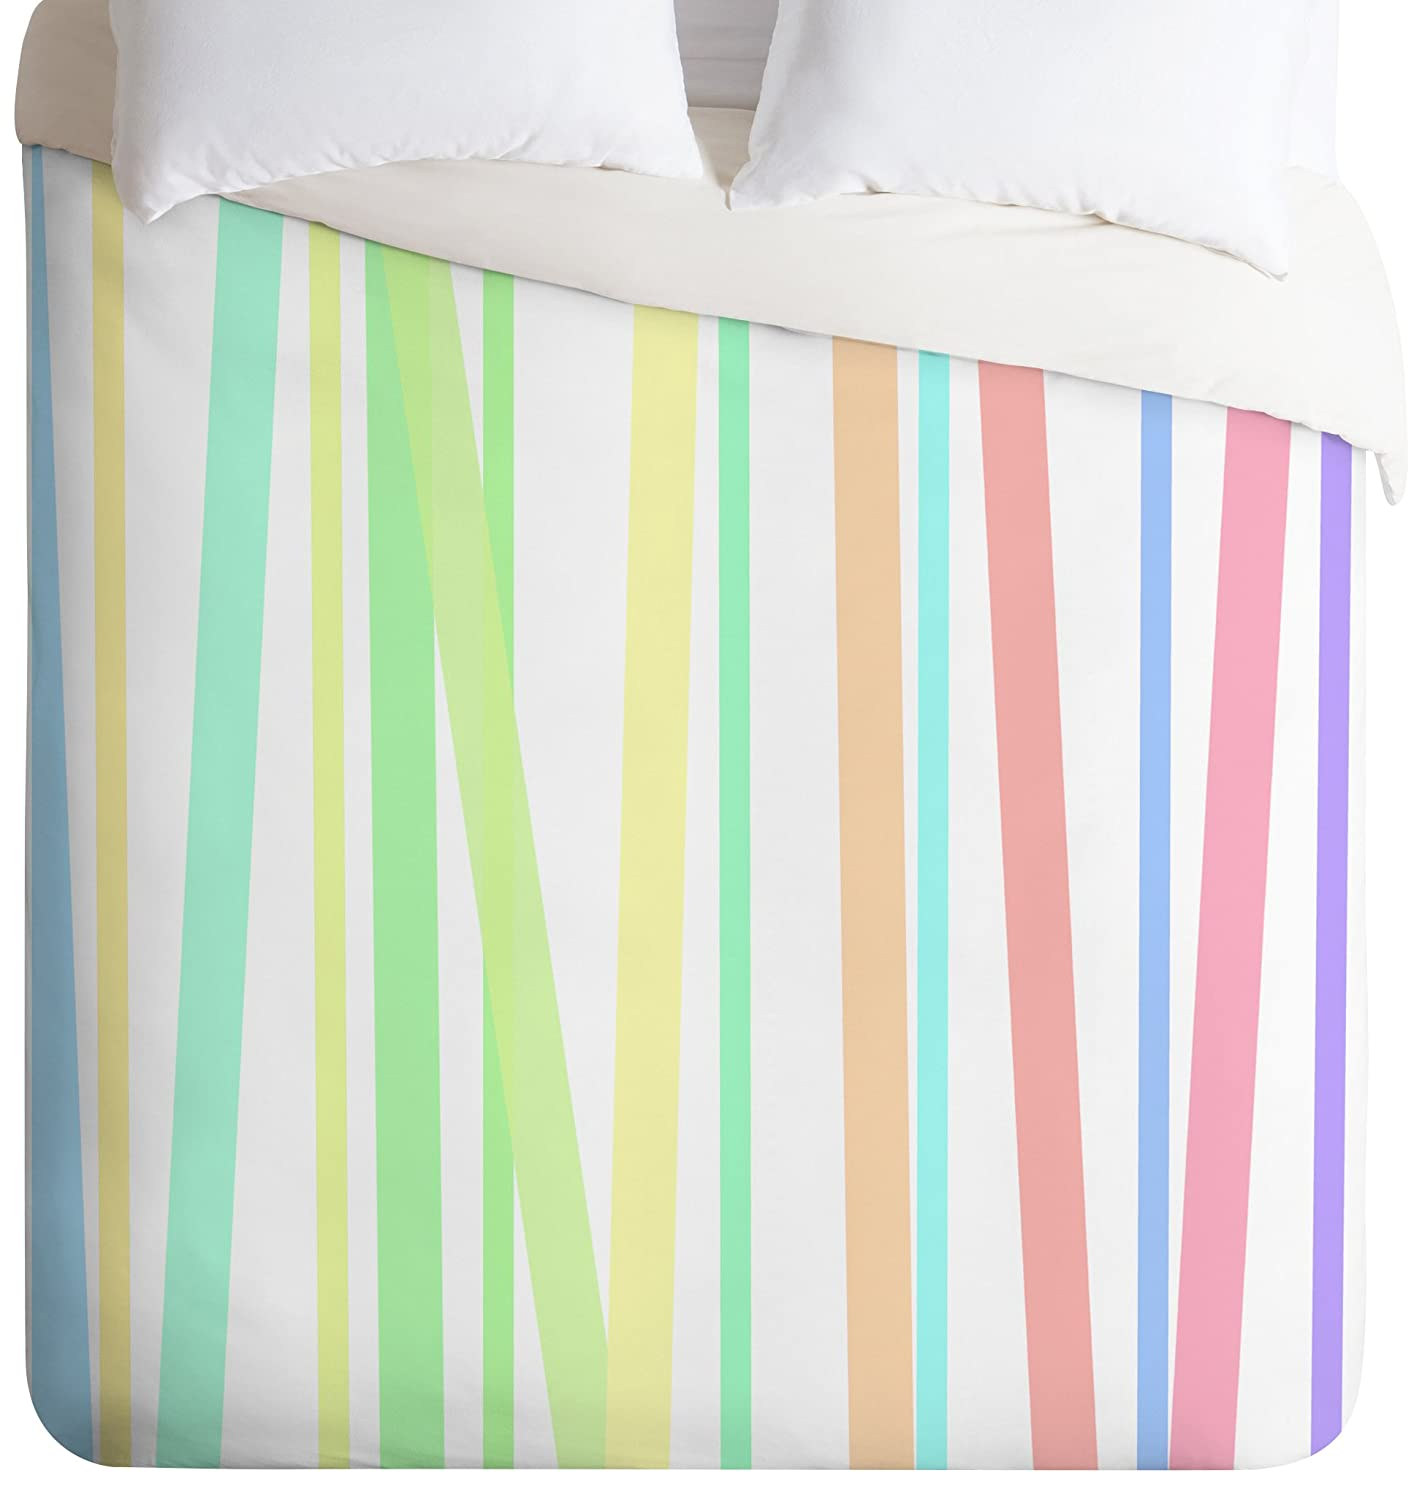 Deny Designs Lisa Argyropoulos Pastel Rainbow Stripes Duvet Cover Queen 51277-dliqun